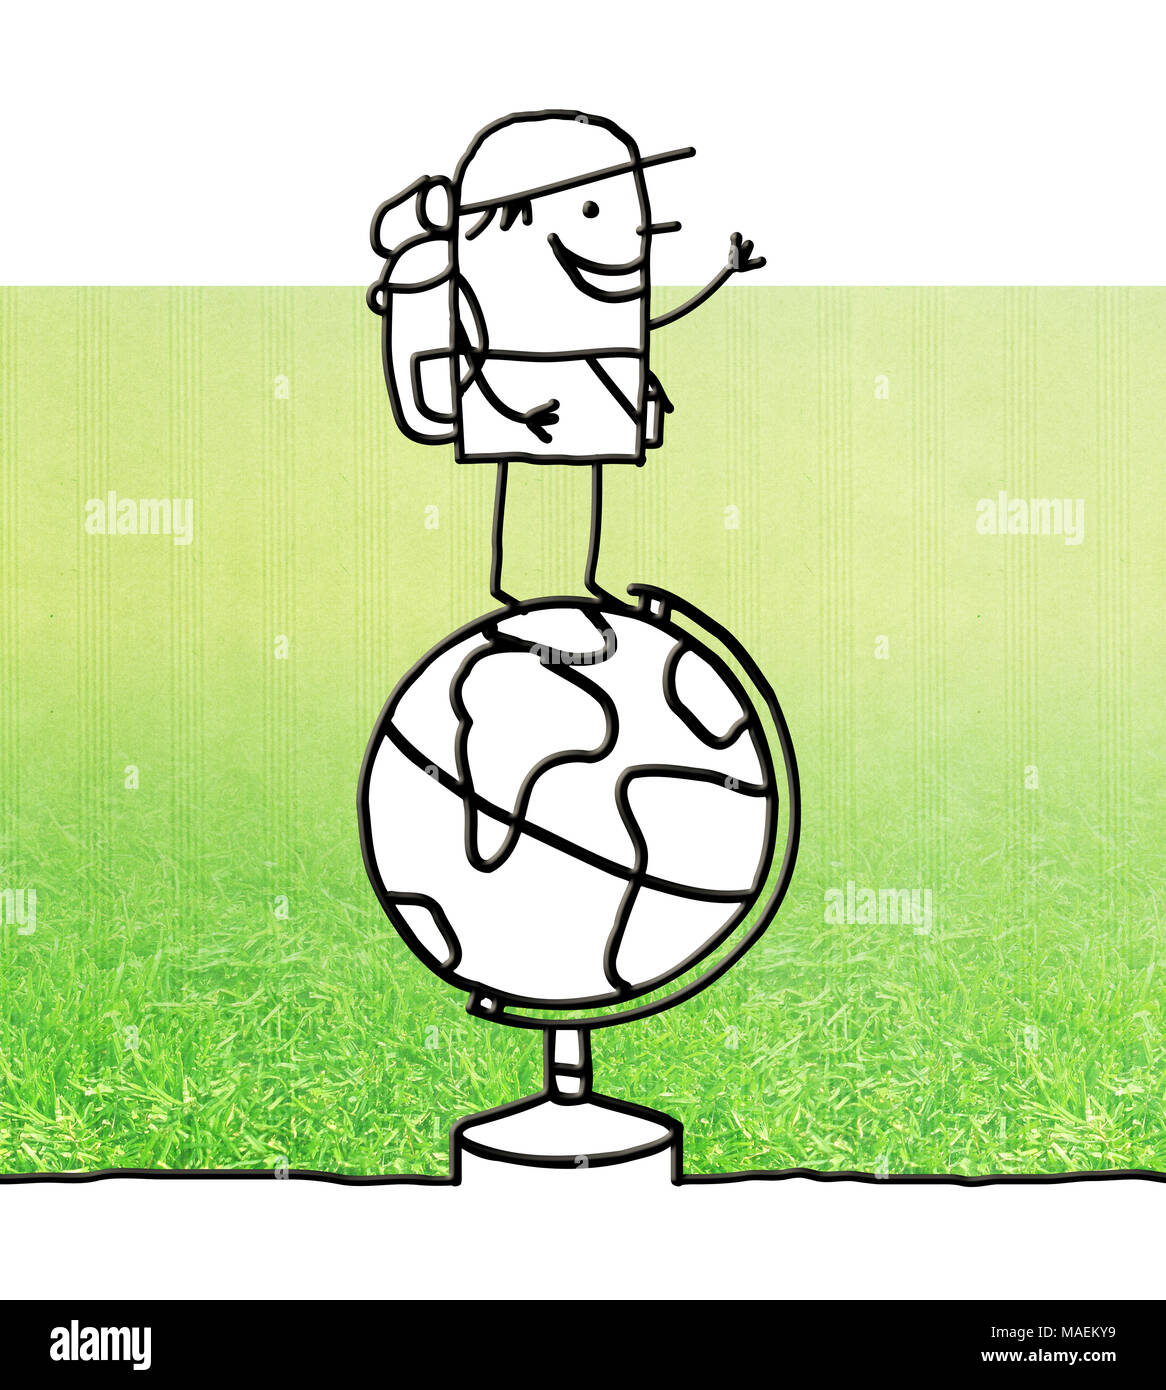 Cartoon traveller standing on a globe - Stock Image